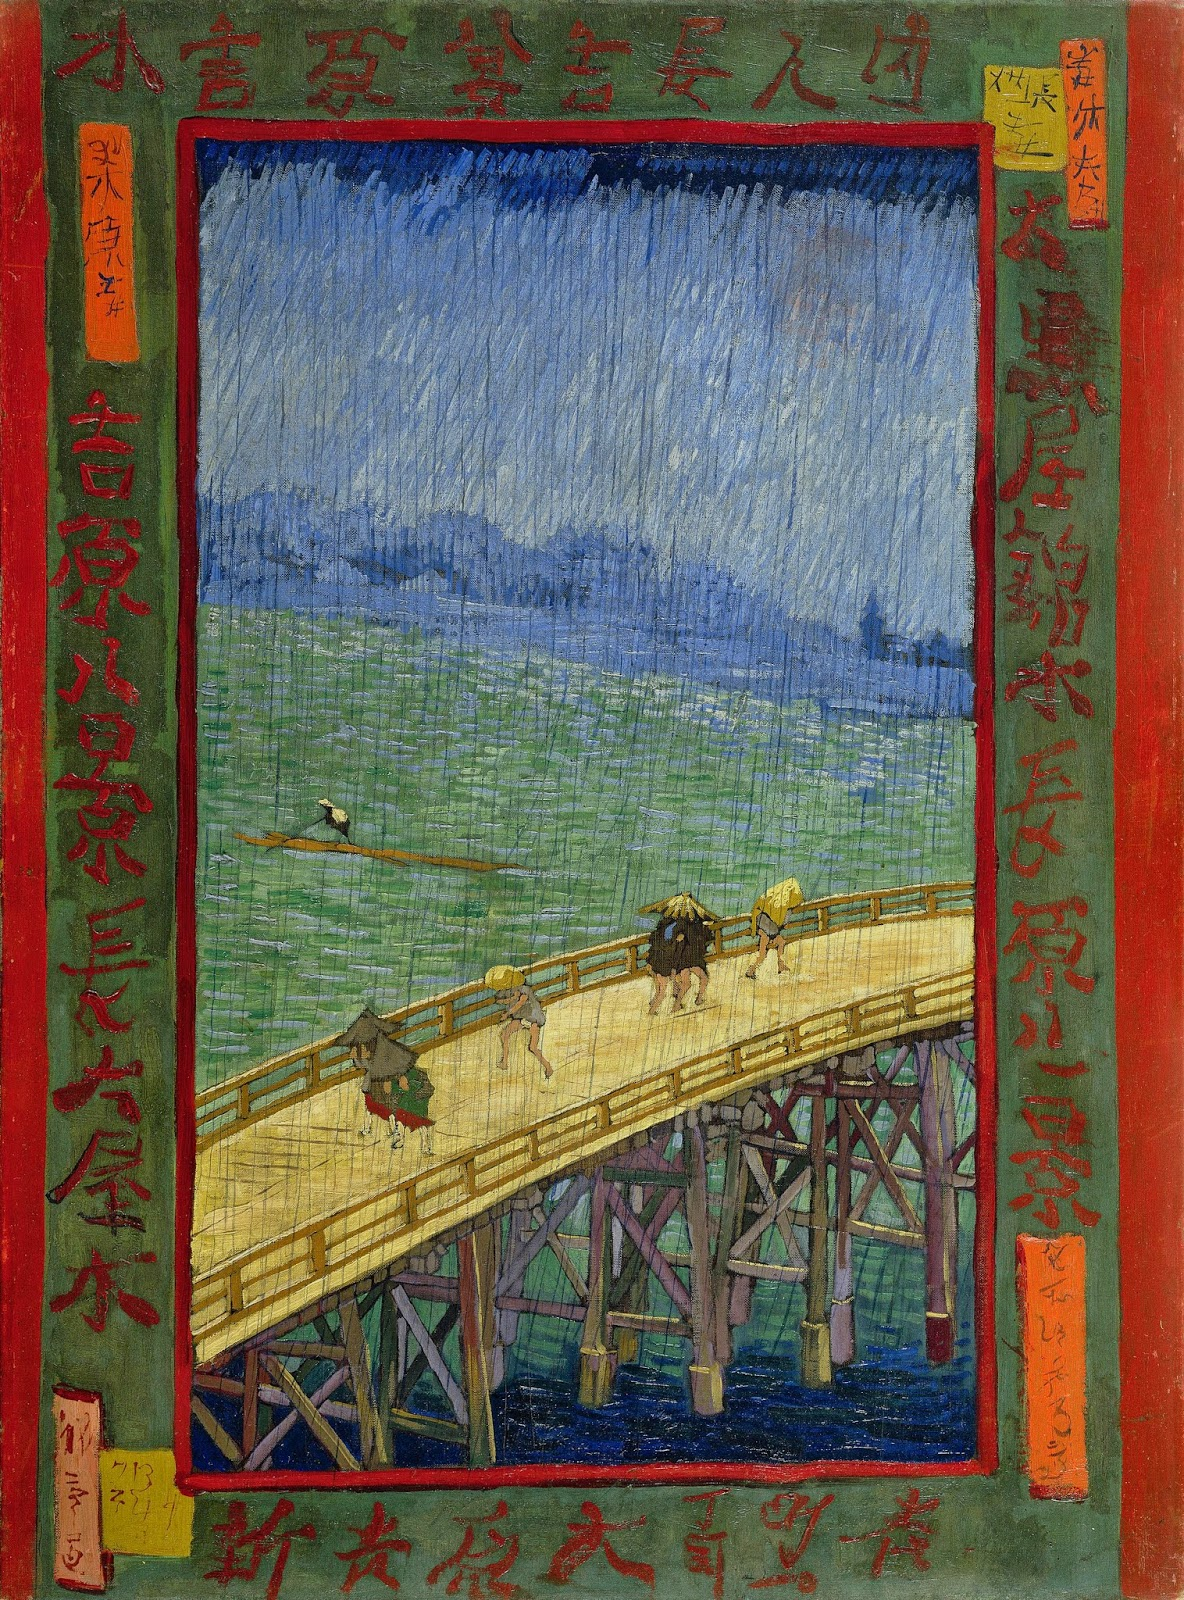 coco talks on van gogh s japonaiserie bridge in the rain after coco talks on van gogh s japonaiserie bridge in the rain after hiroshige 1887